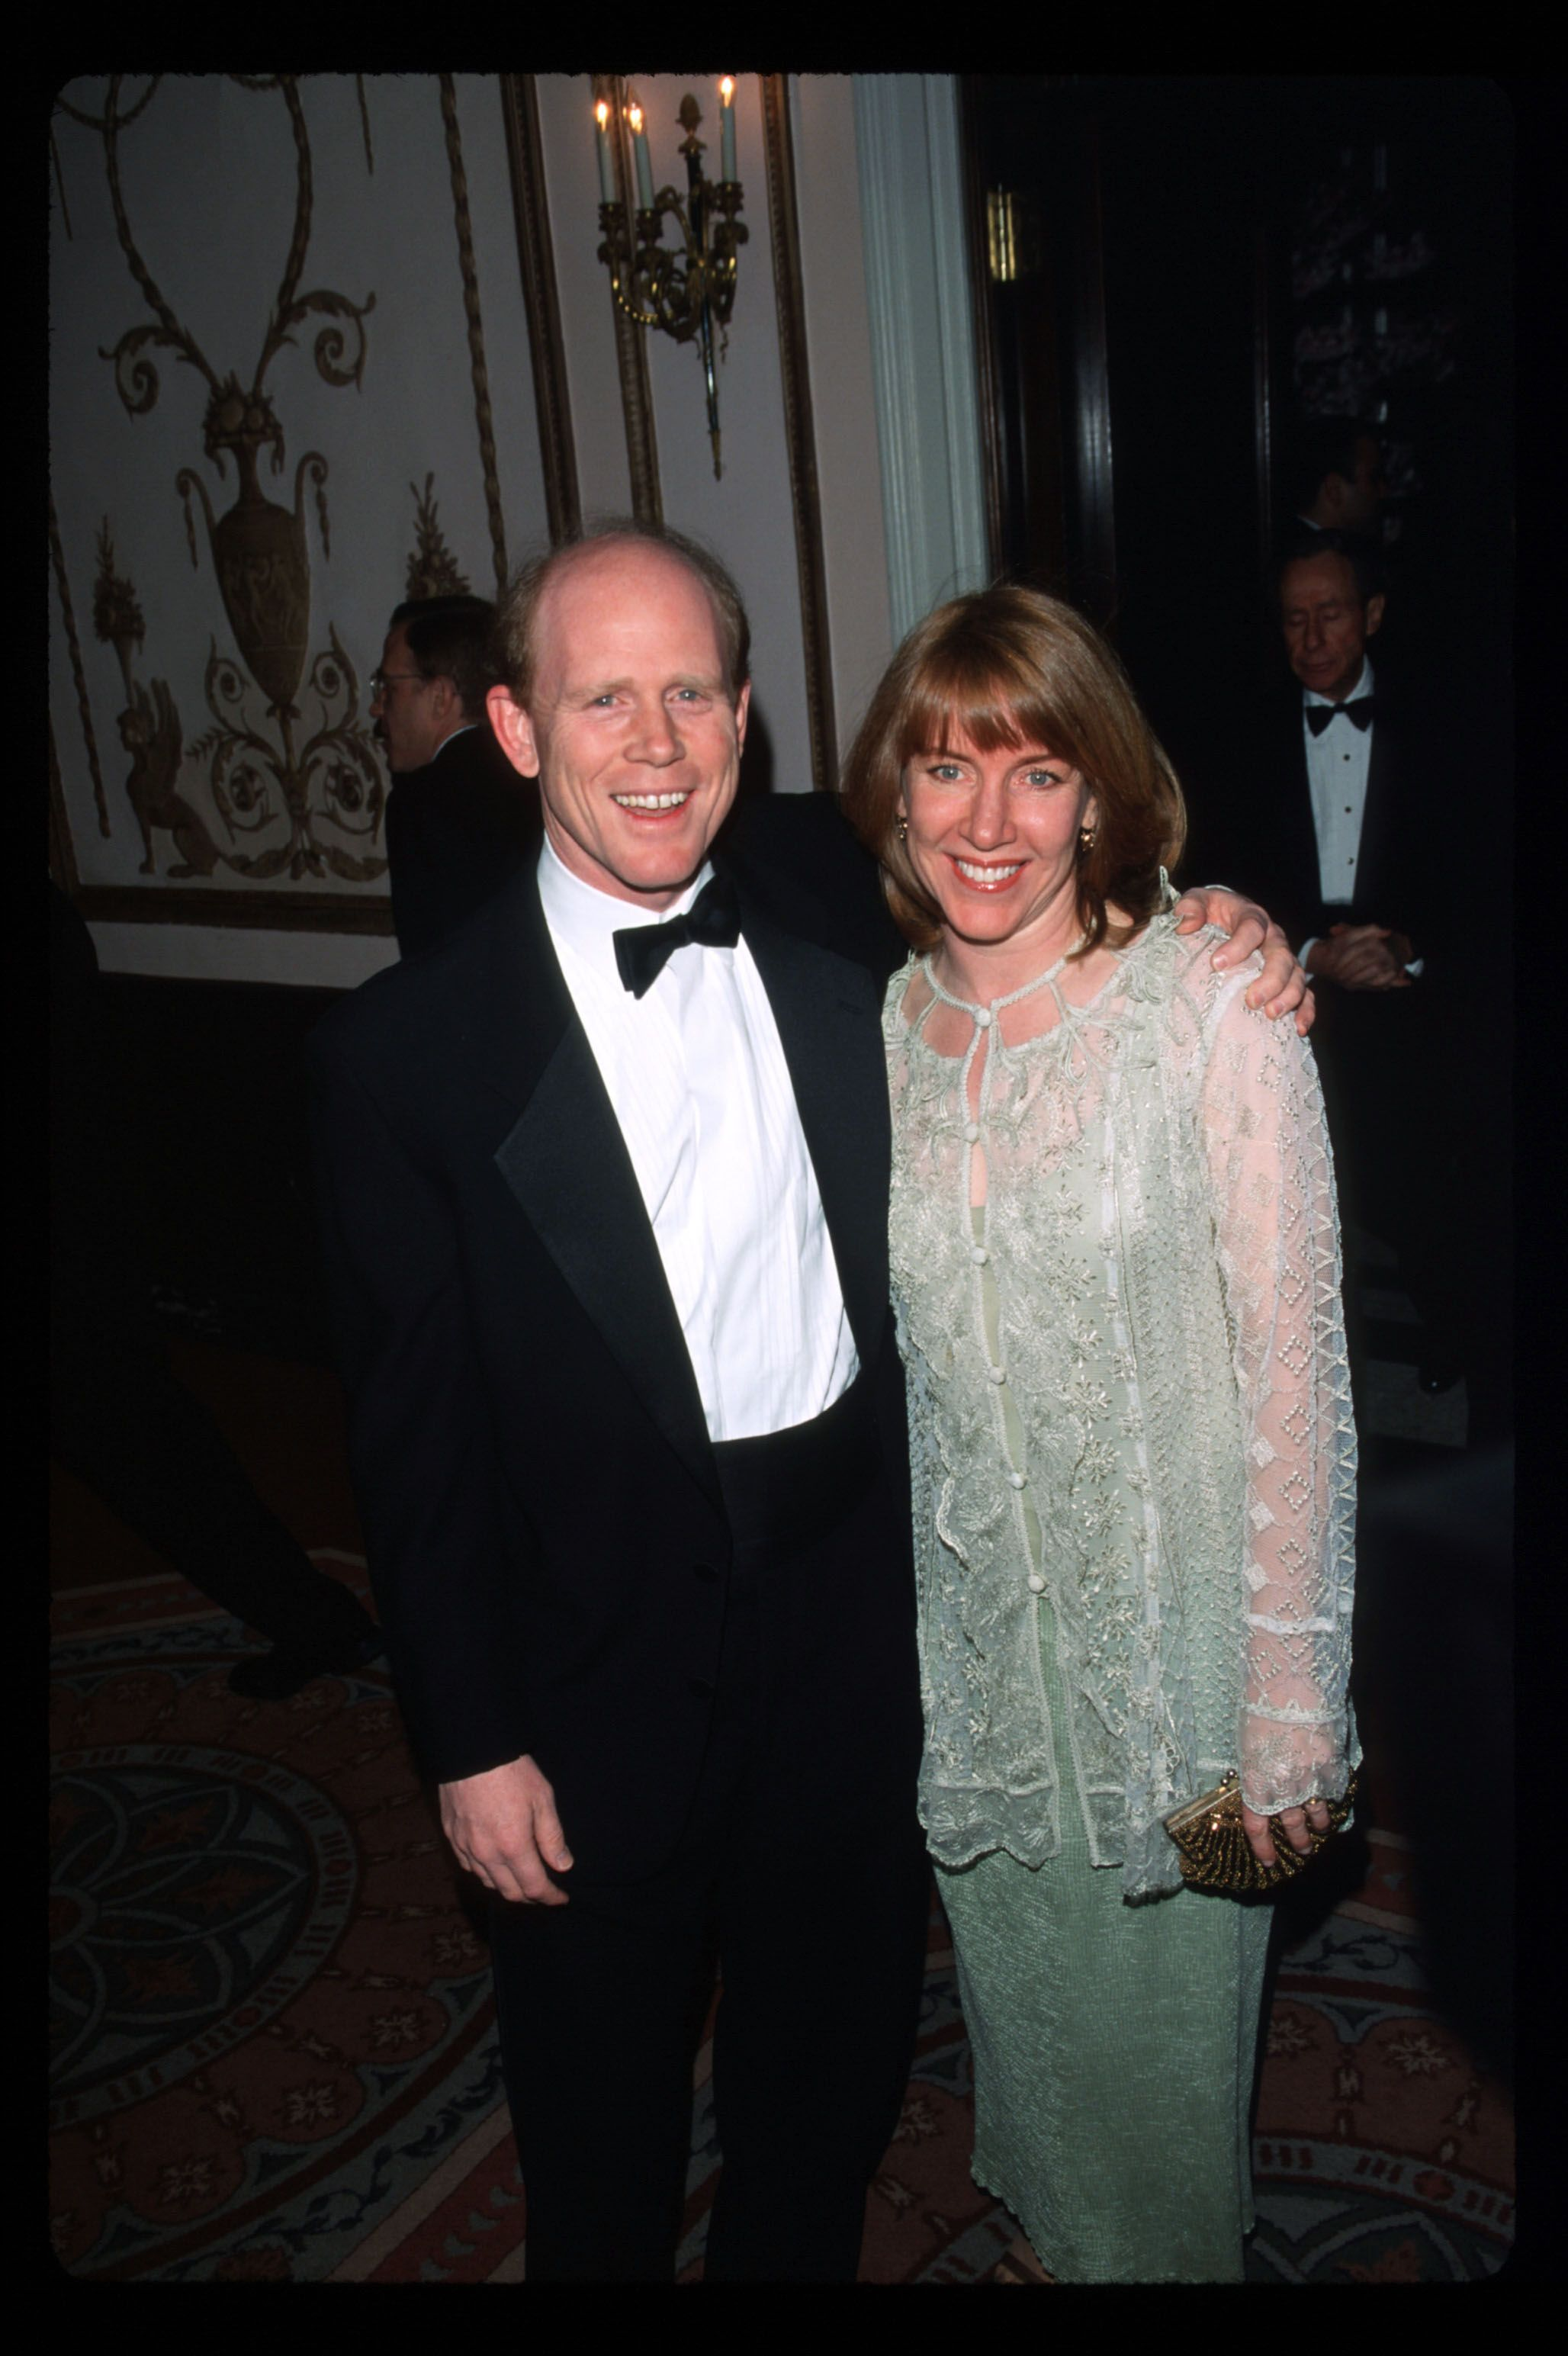 Ron Howard with his wife Cheryl on April 29, 1999, at the 14th Annual American Museum of the Moving Image Tribute in New York City   Photo:Getty Images